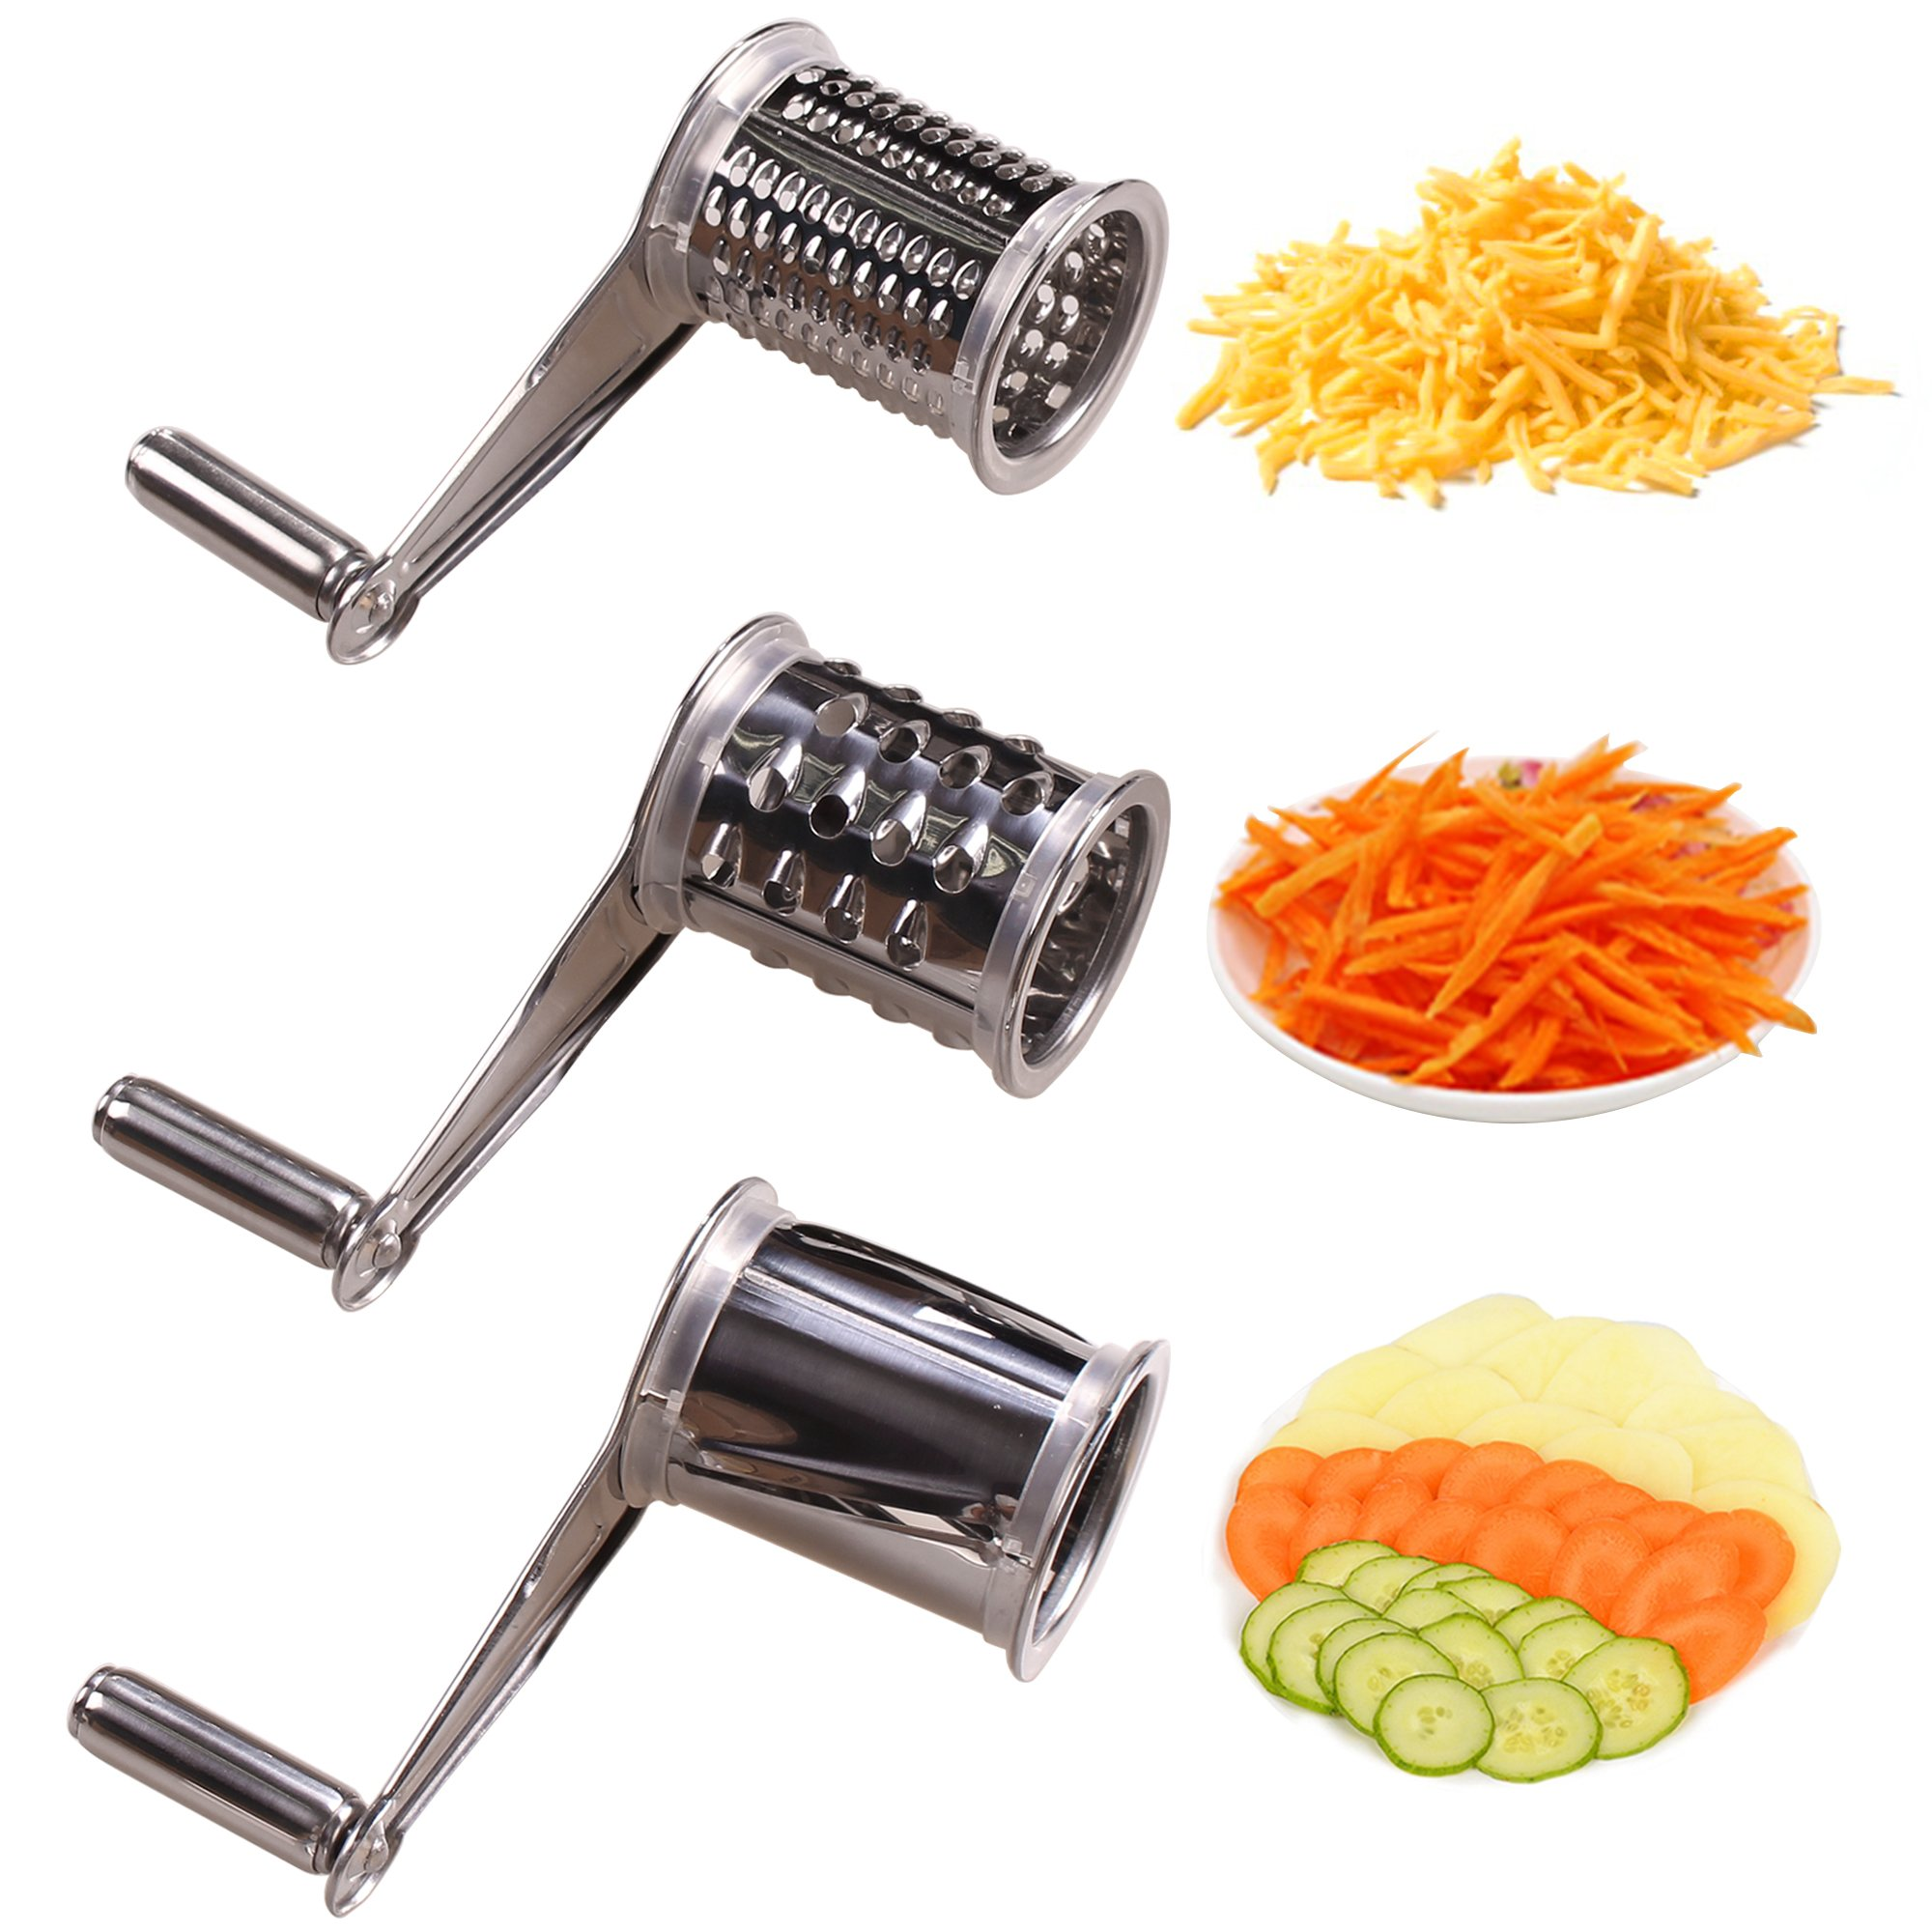 Rotary Cheese Grater - LOVKITCHEN Vegetable Cheese Cutter Slicer Shredder